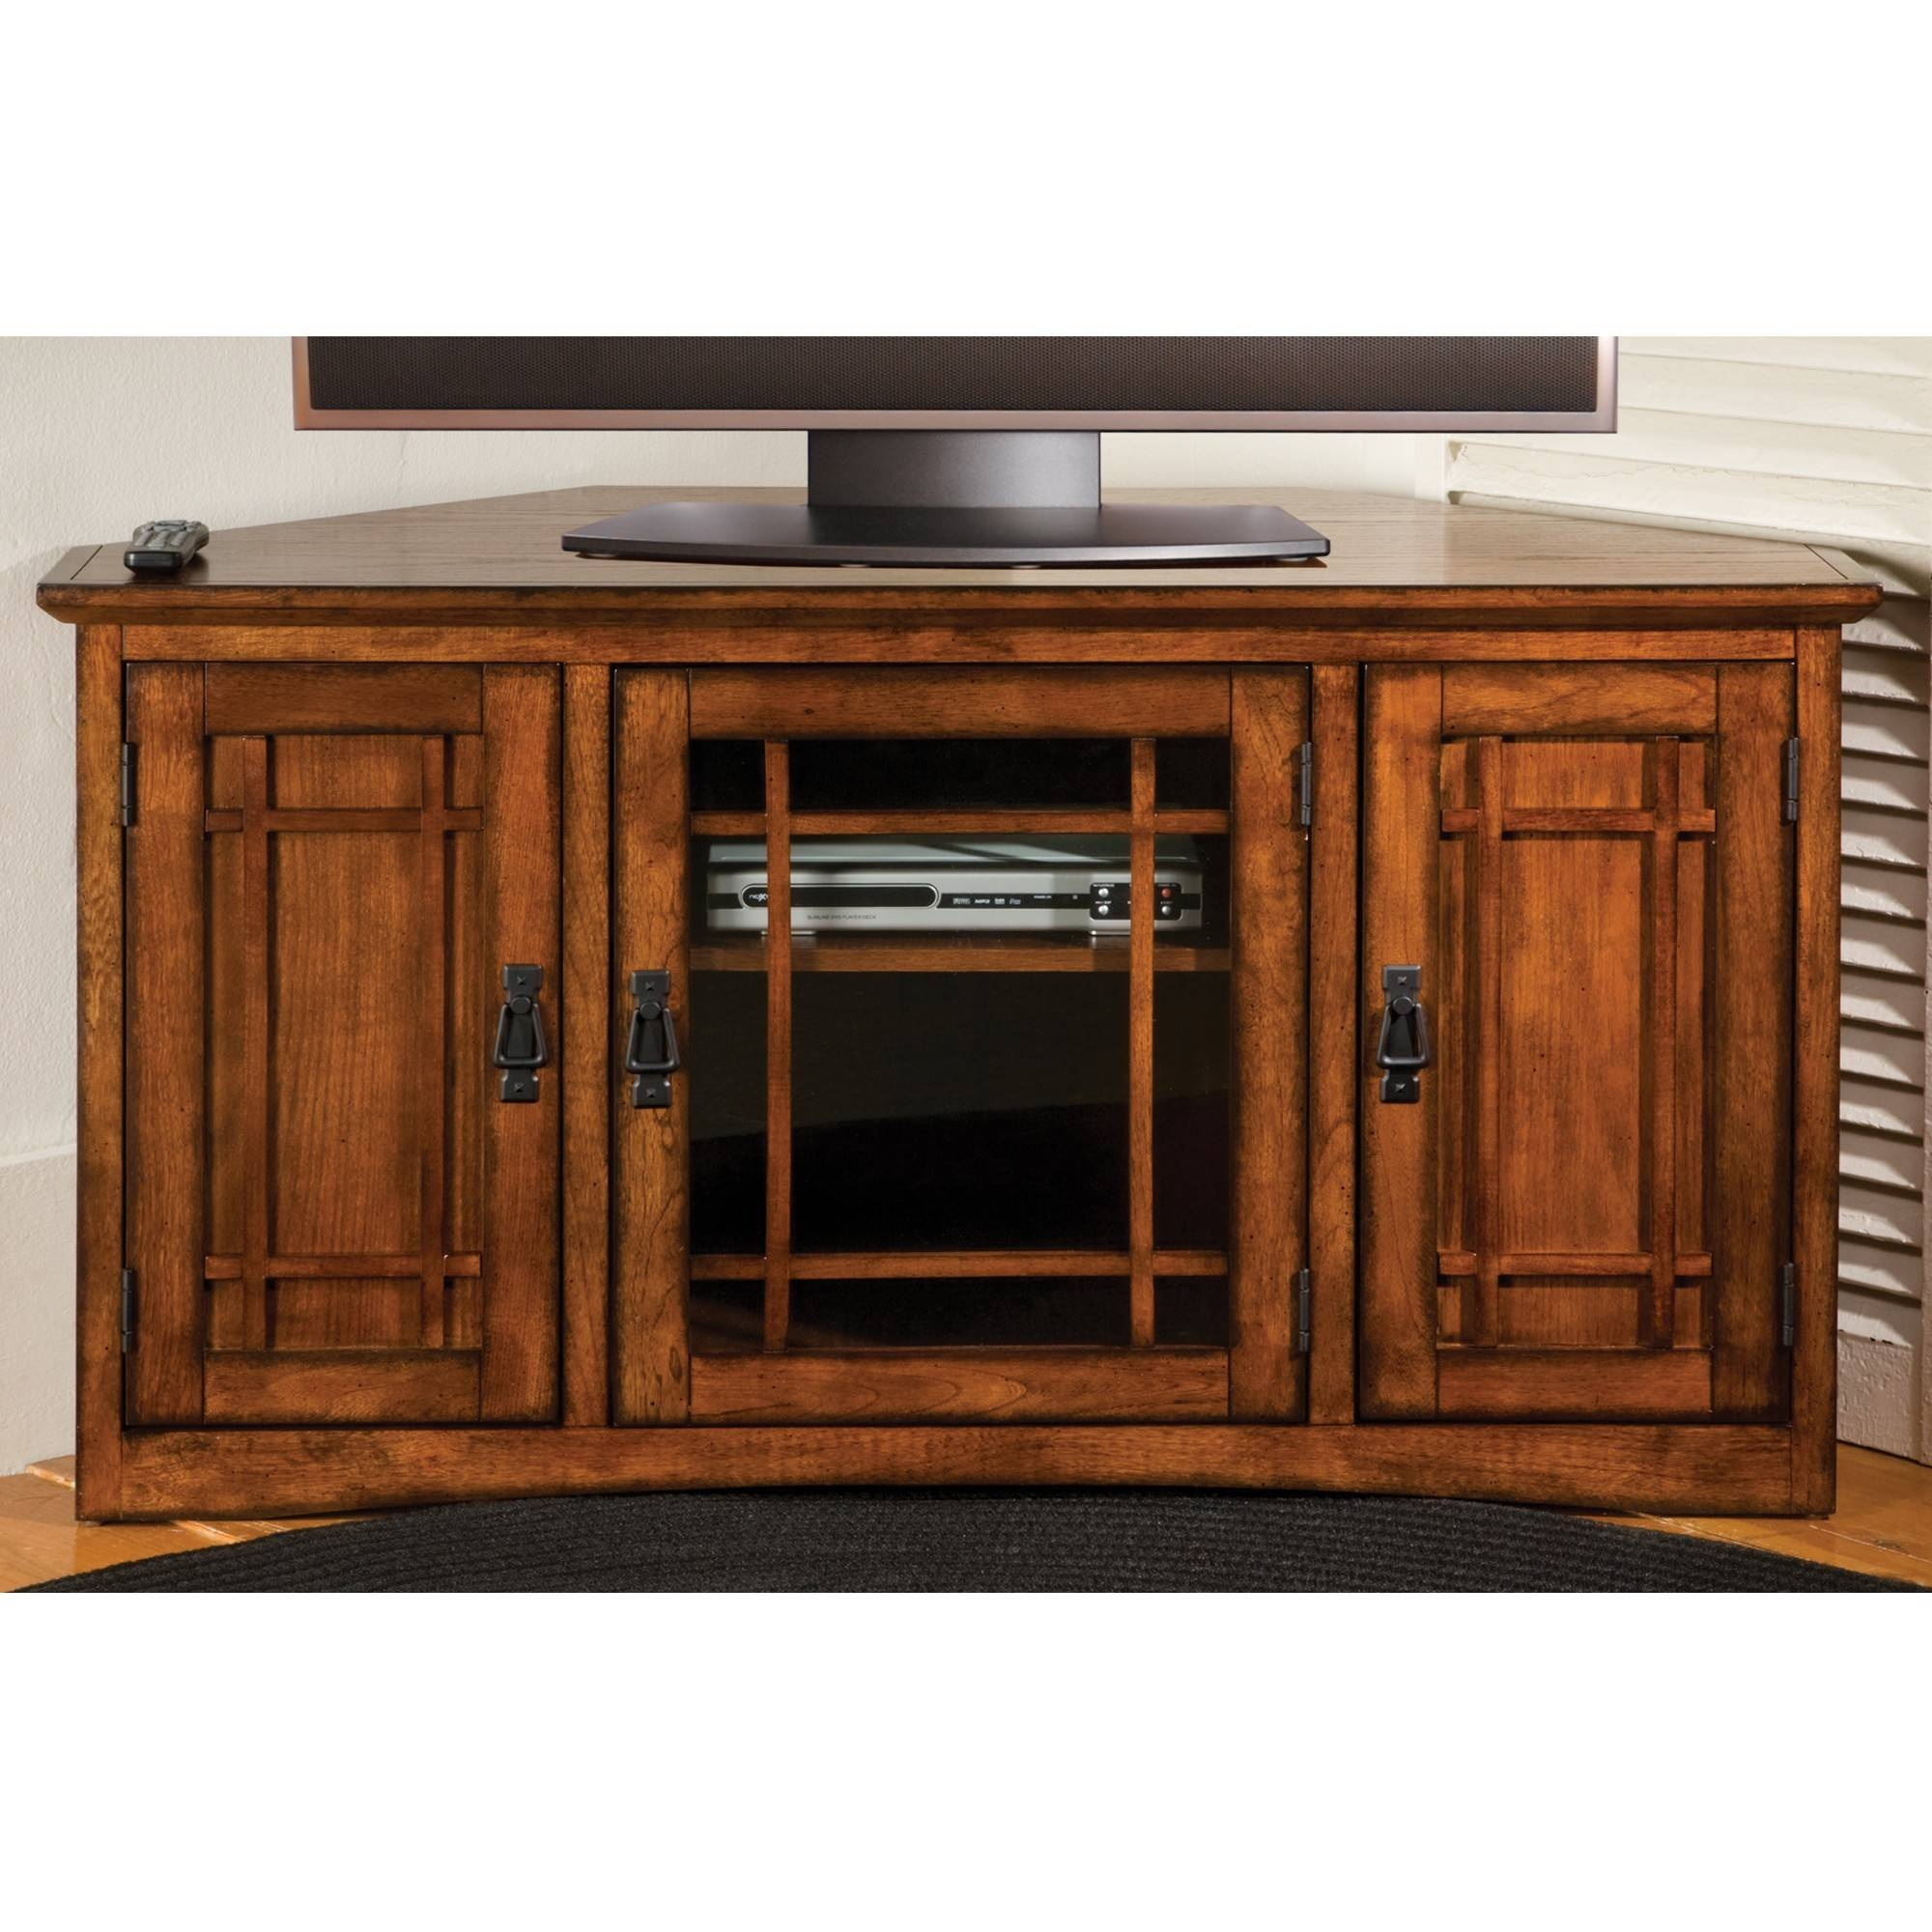 Awesome Corner Tv Cabinet With Doors For Your Lovely Home intended for Corner Tv Stands For 60 Inch Tv (Image 2 of 15)